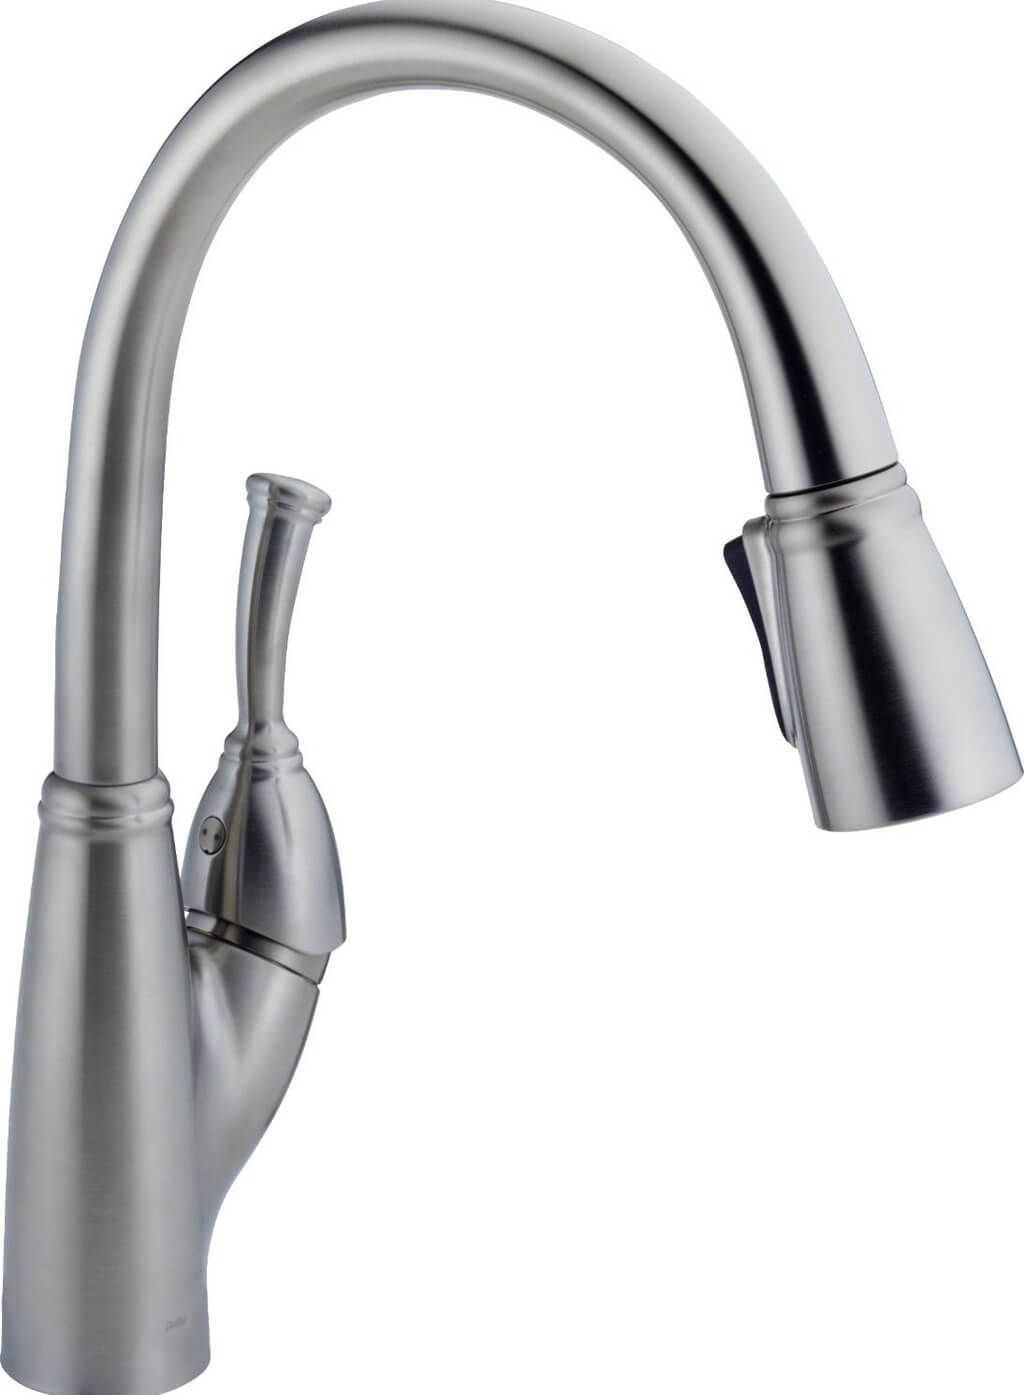 Ideas, best pull down kitchen faucet 2013 best pull down kitchen faucet 2013 kitchen design brushed nickel kitchen faucet with two handles and 1024 x 1395  .